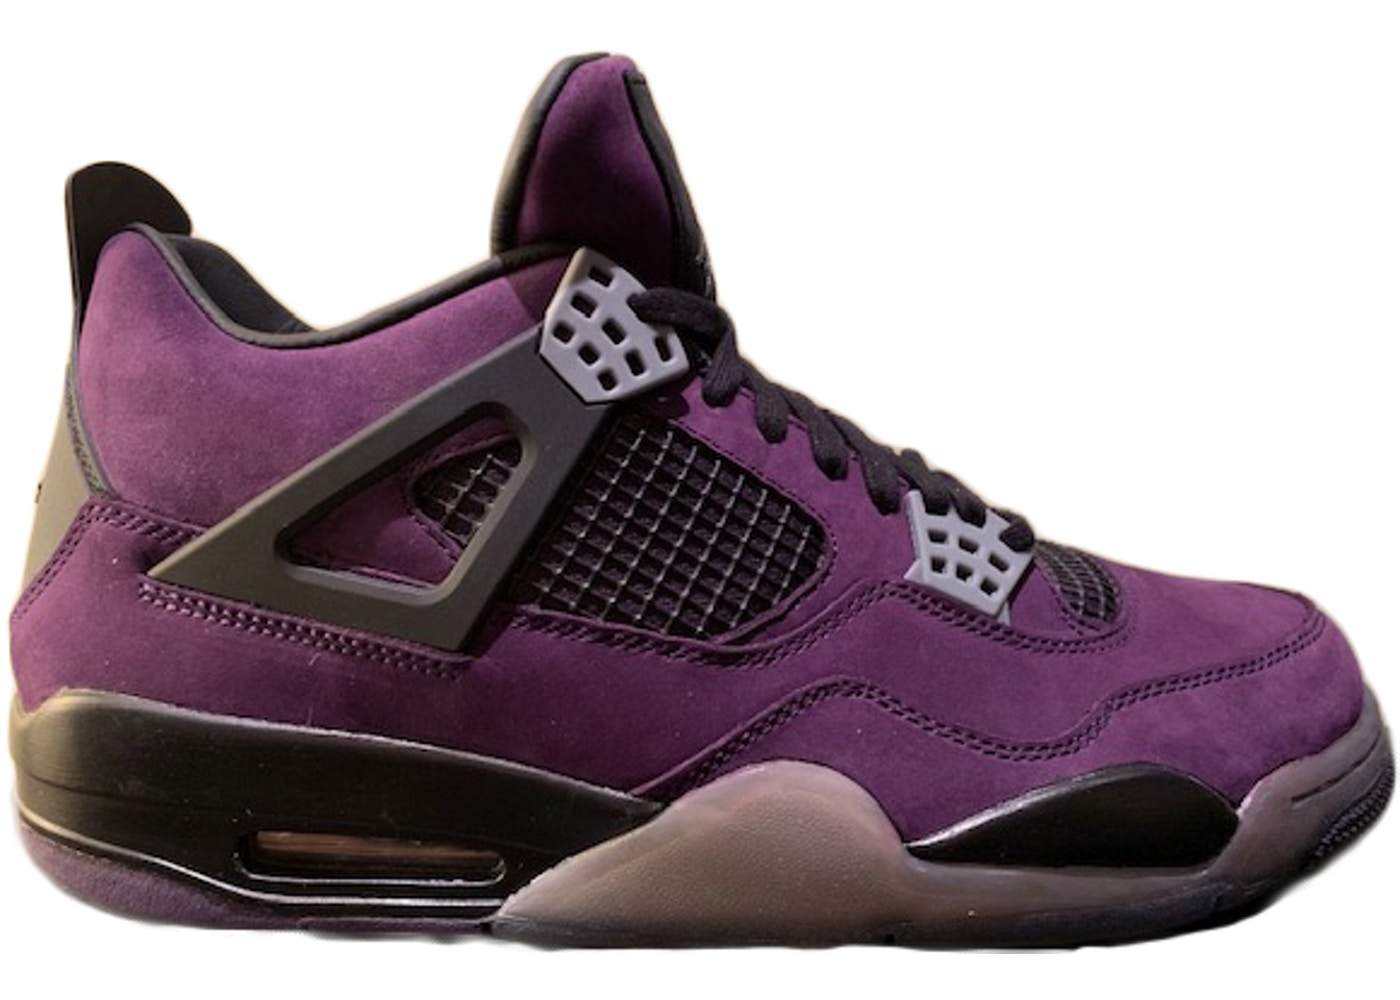 ec036737025961 Jordan 4 Retro Travis Scott Purple (Friends and Family) - 766296 LN4